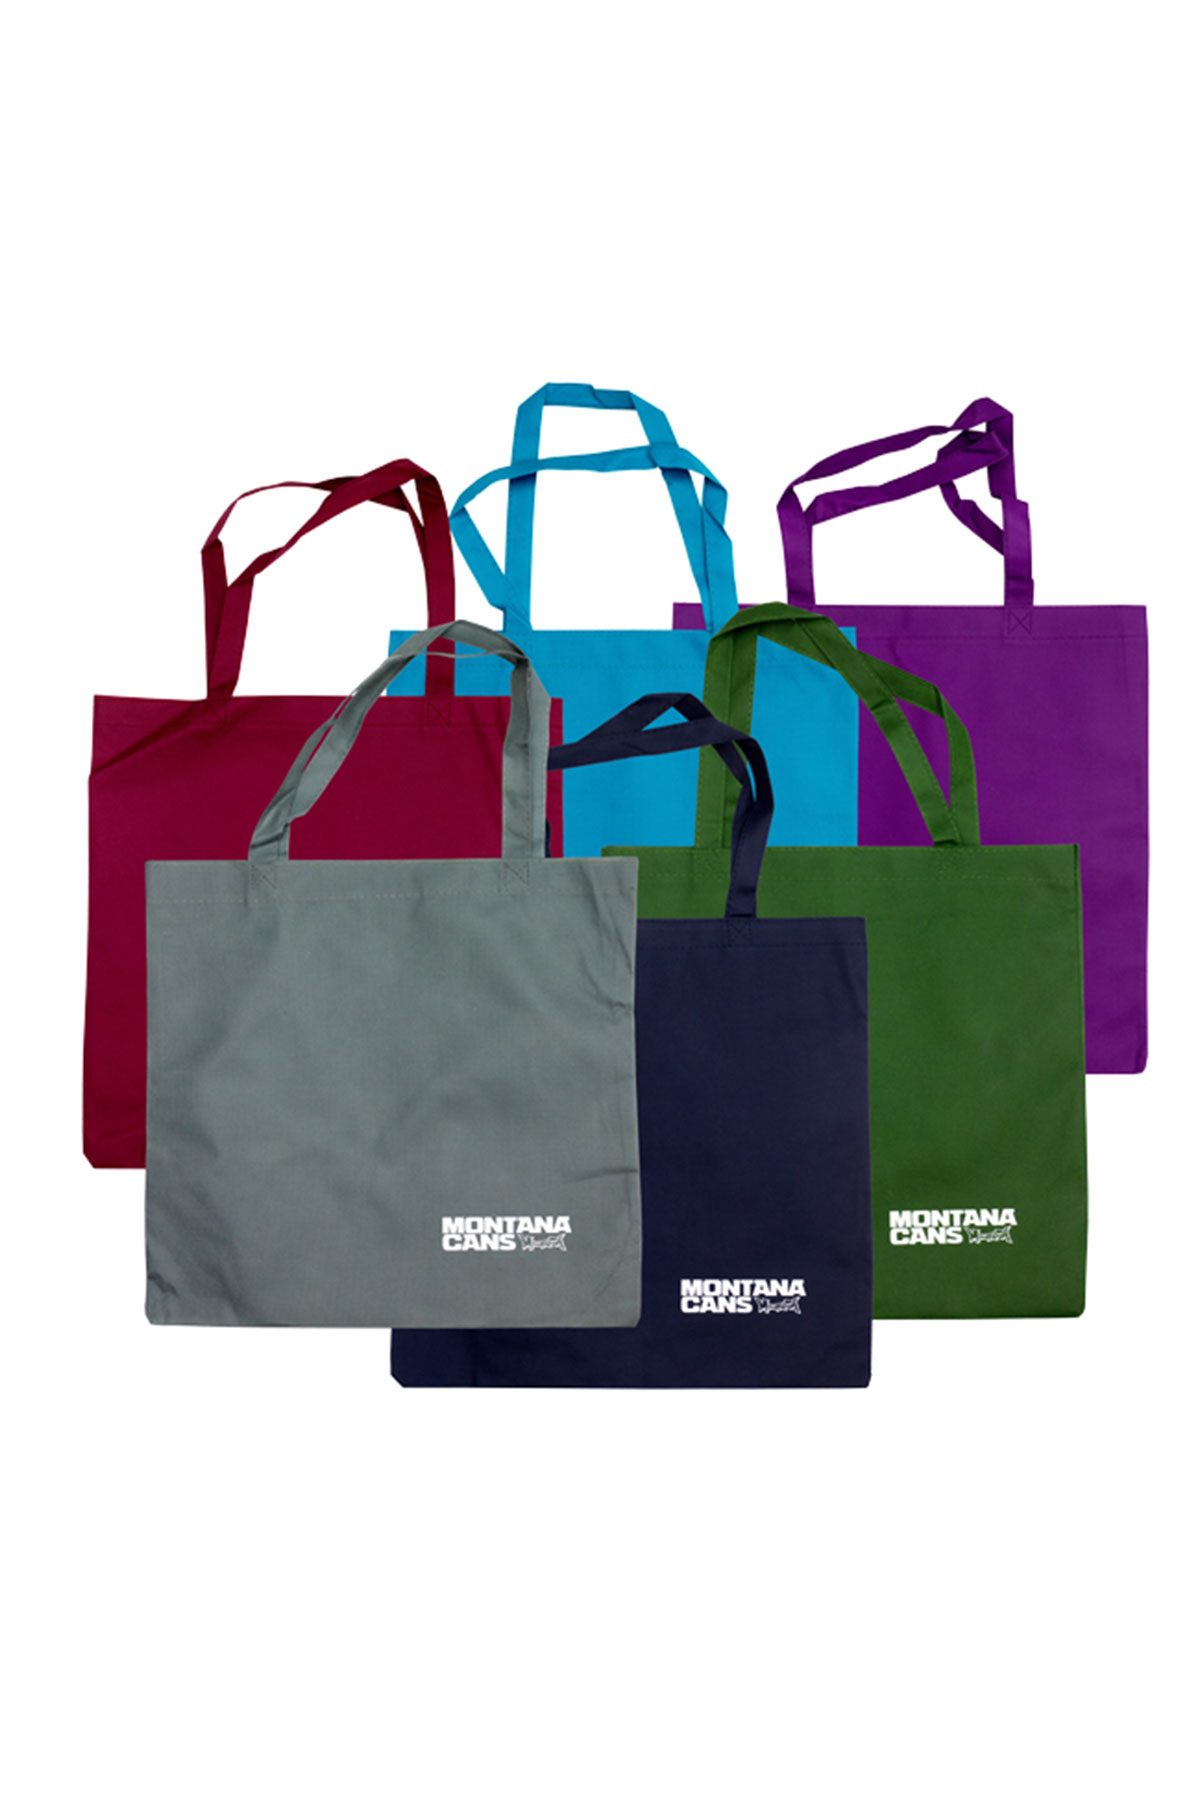 Montana PP Bag - Mixed Colors